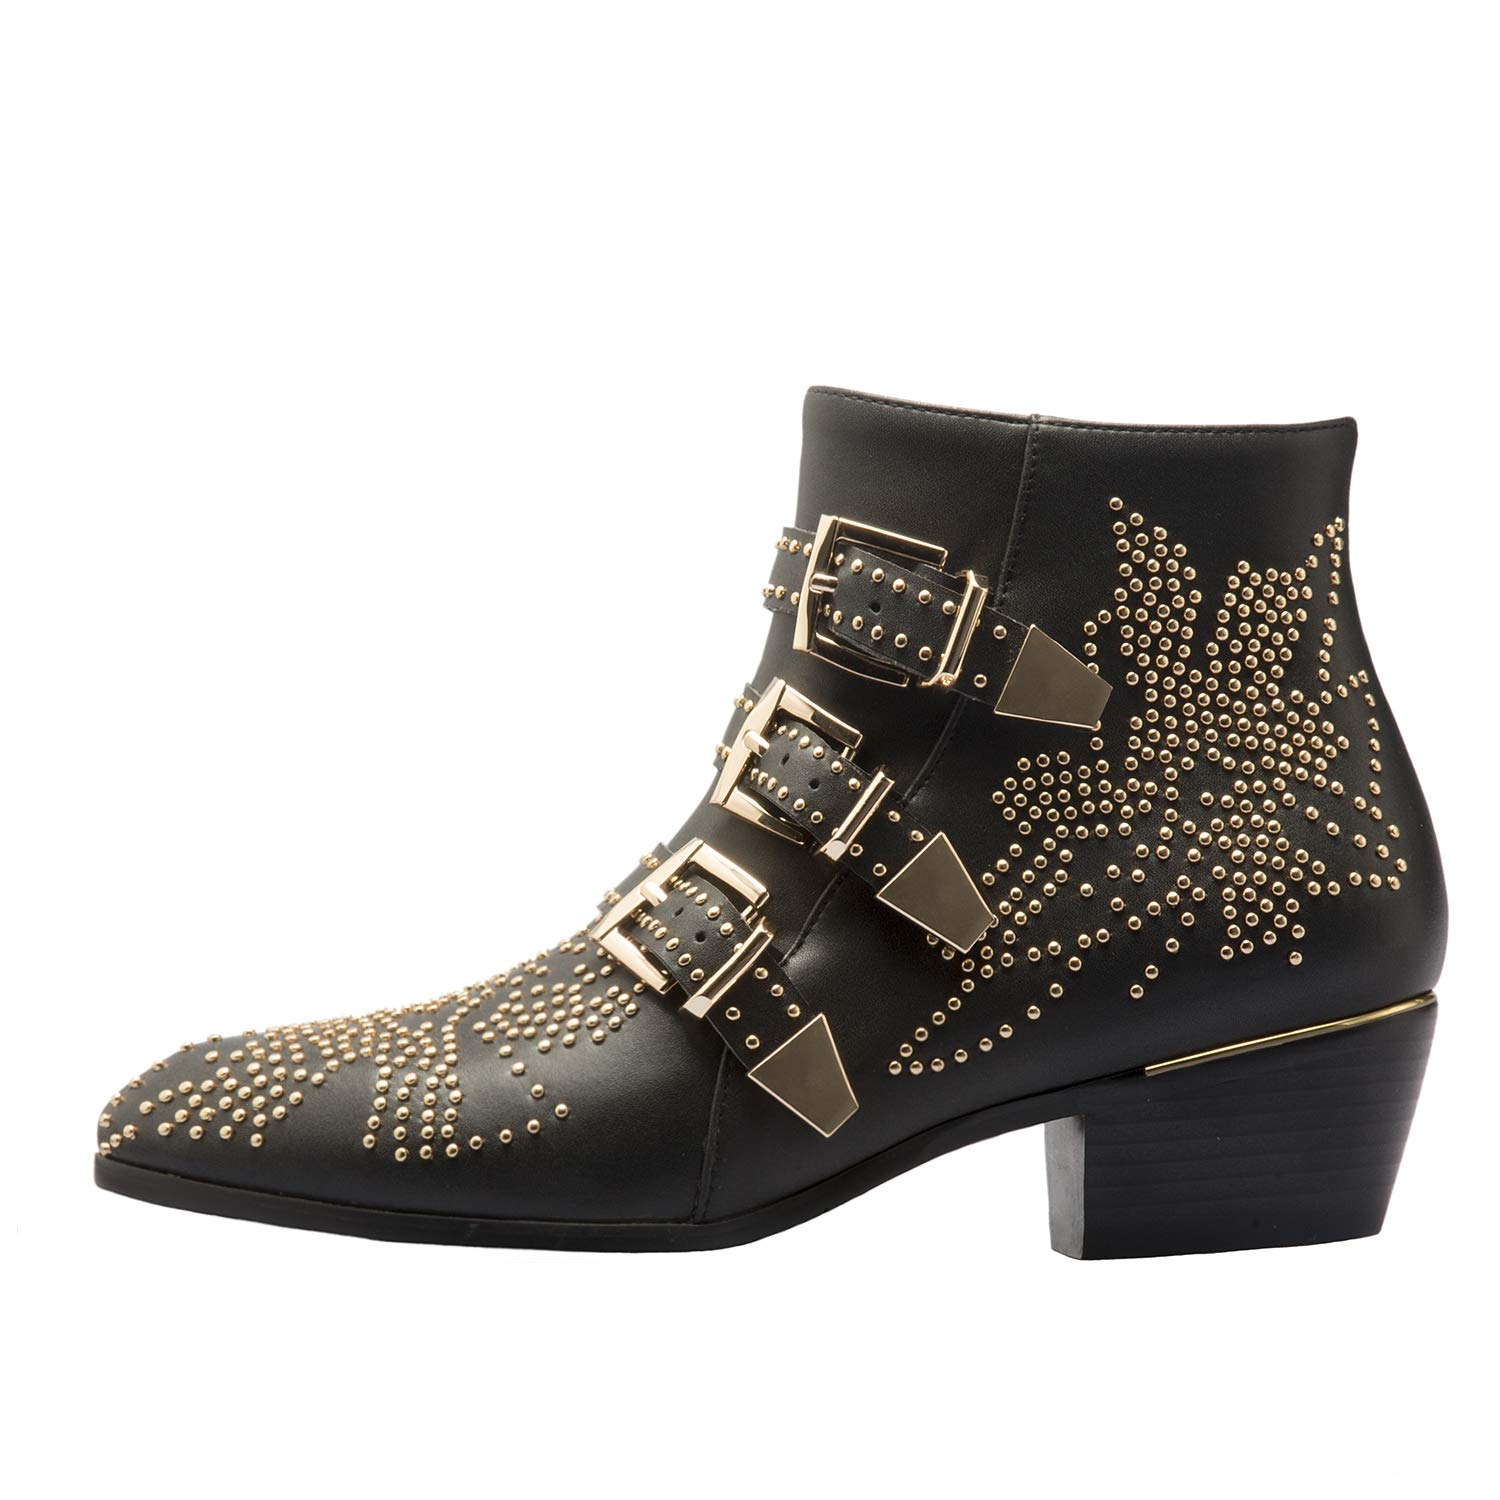 Black-gold Comfity Boots for Women,Women's Leather Boot Rivets Studded shoes Metal Buckle Low Heels Ankle Boots